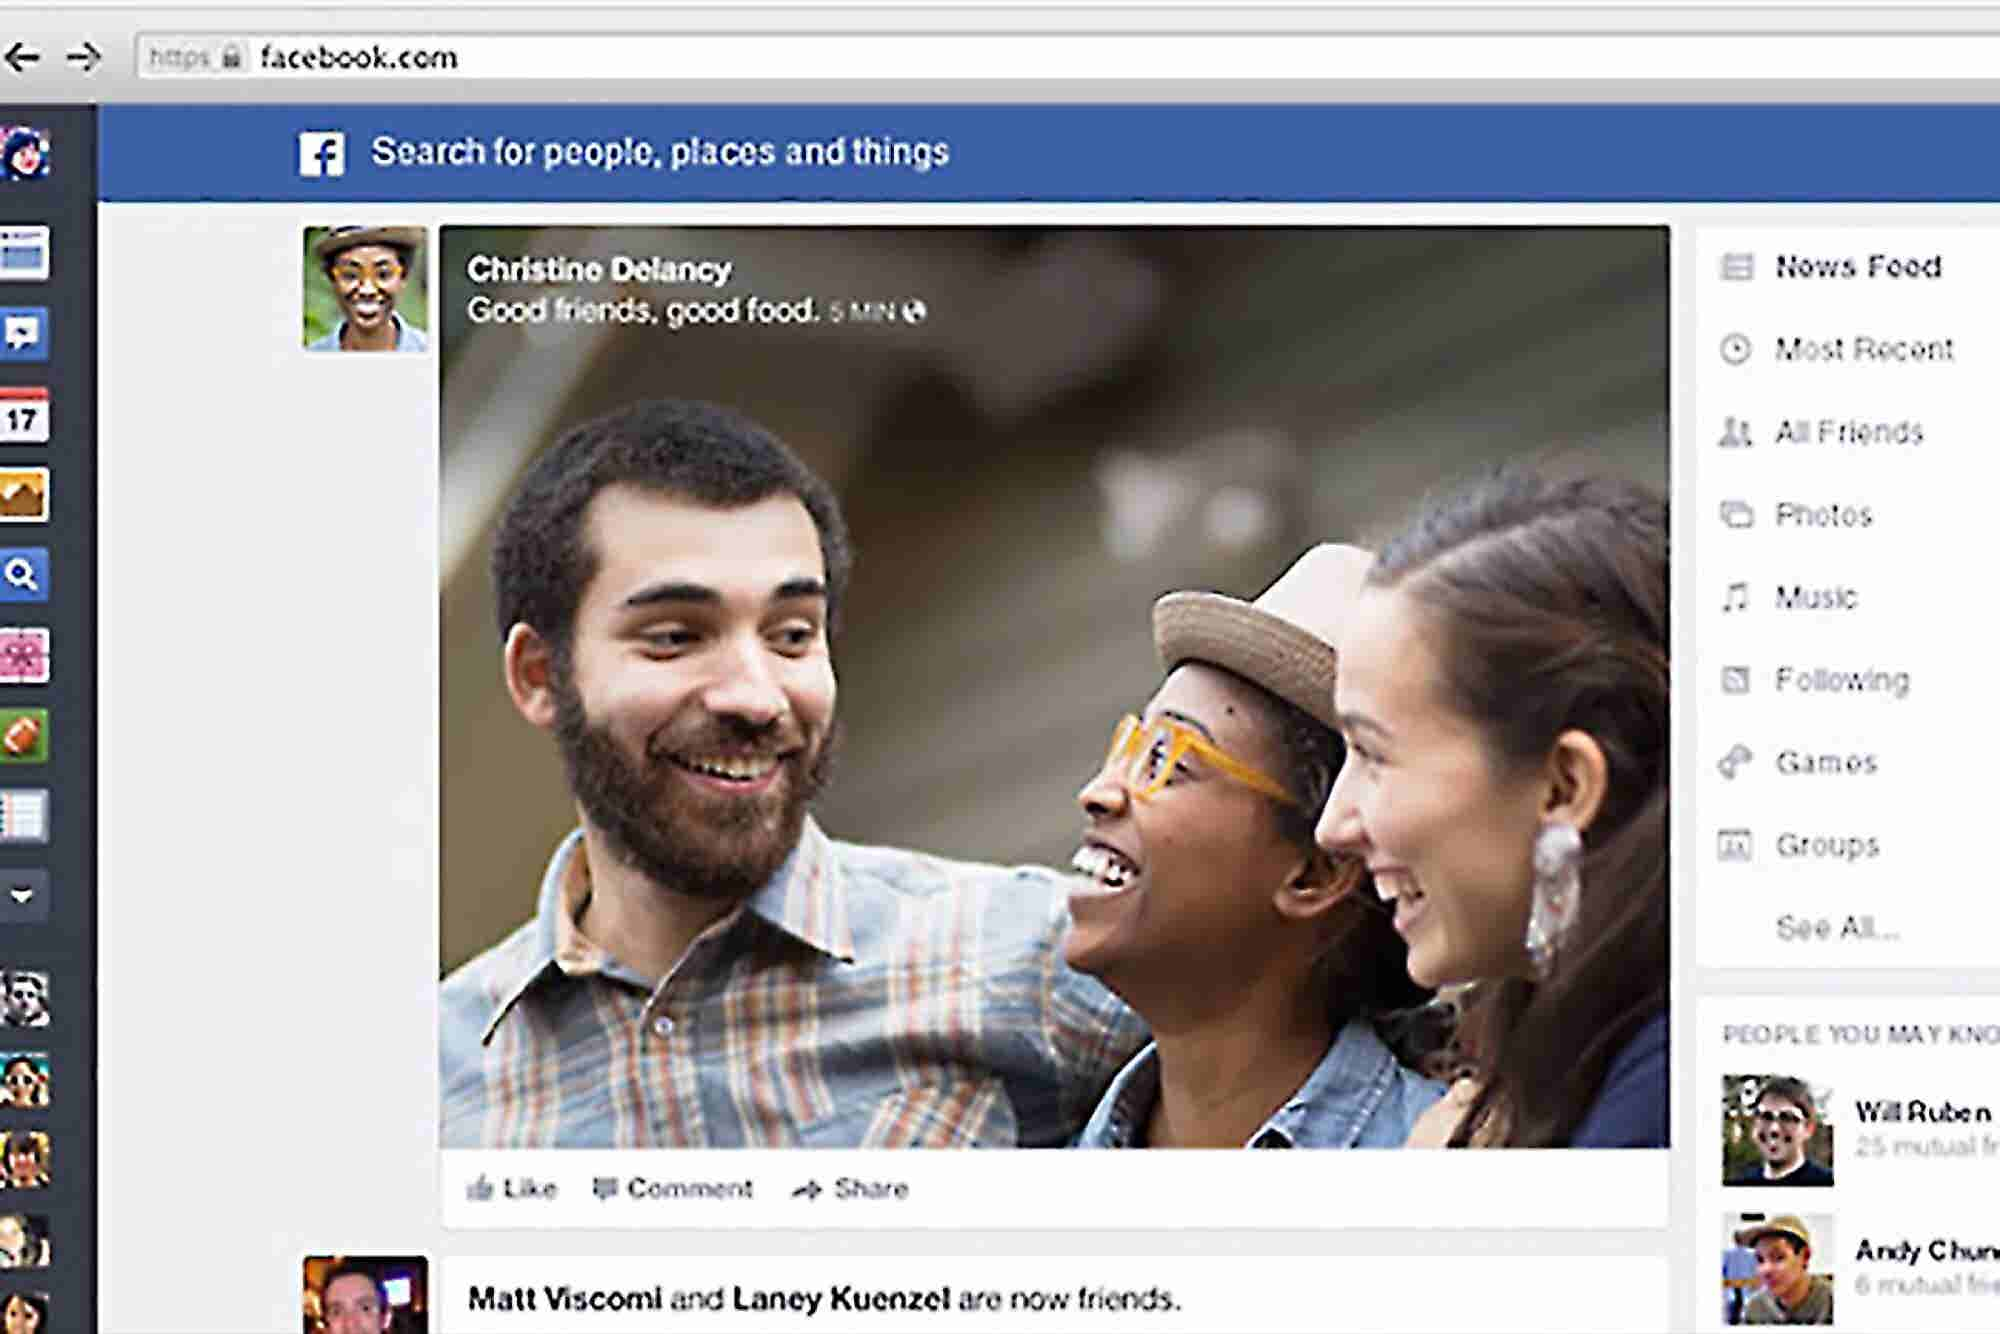 4 Tips for Using Facebook's Redesigned News Feed